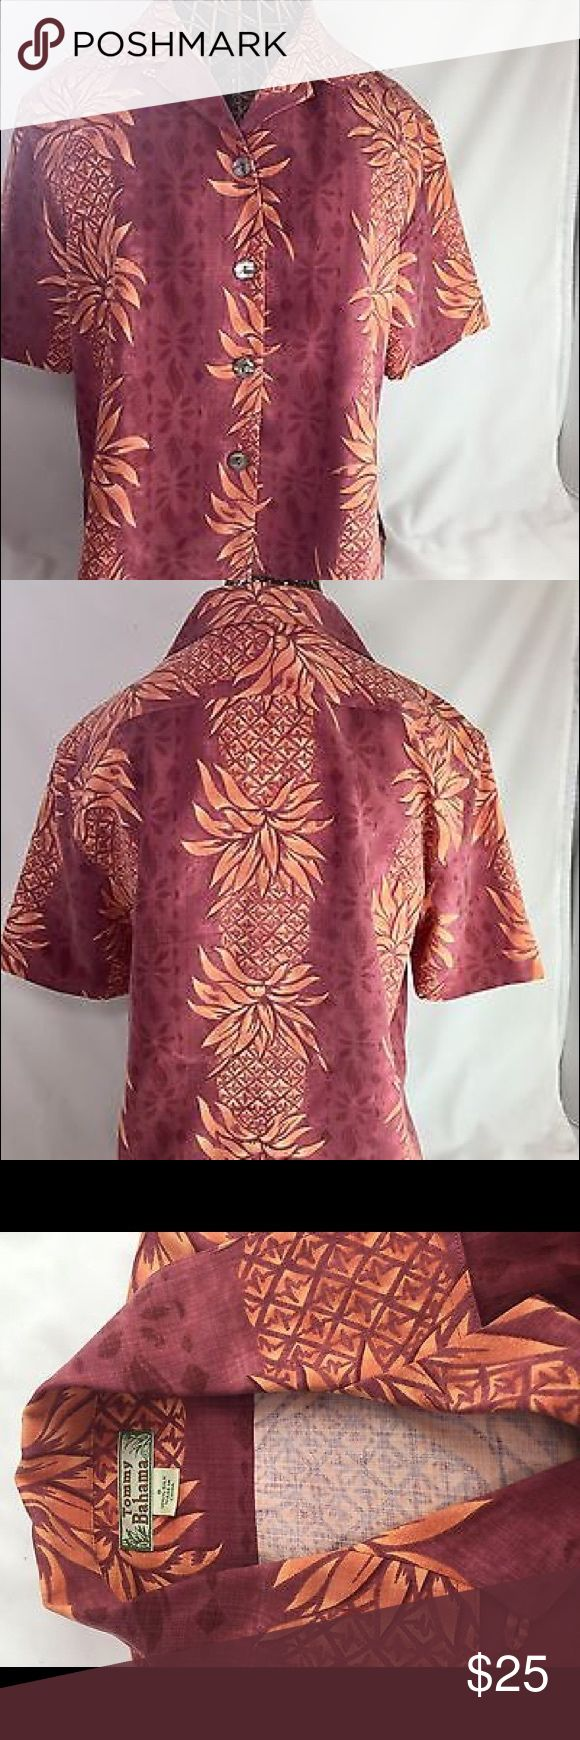 """Tommy Bahama Tropical Print OrangeRust Blouse/Shrt Tommy Bahama Silk Shirt / Blouse Island Print in Shades of Rust + Orange  Size: Small Material: 100% Silk Style: Button Up with Lay-Back Collar Condition: Immaculate - Shows No Wear Material: Rich and Luxurious Feeling Measurements: 21"""" across chest 22"""" collar to hem in back.  Comes from pet free, smoke free, fragrance free home. Tommy Bahama Tops Blouses"""